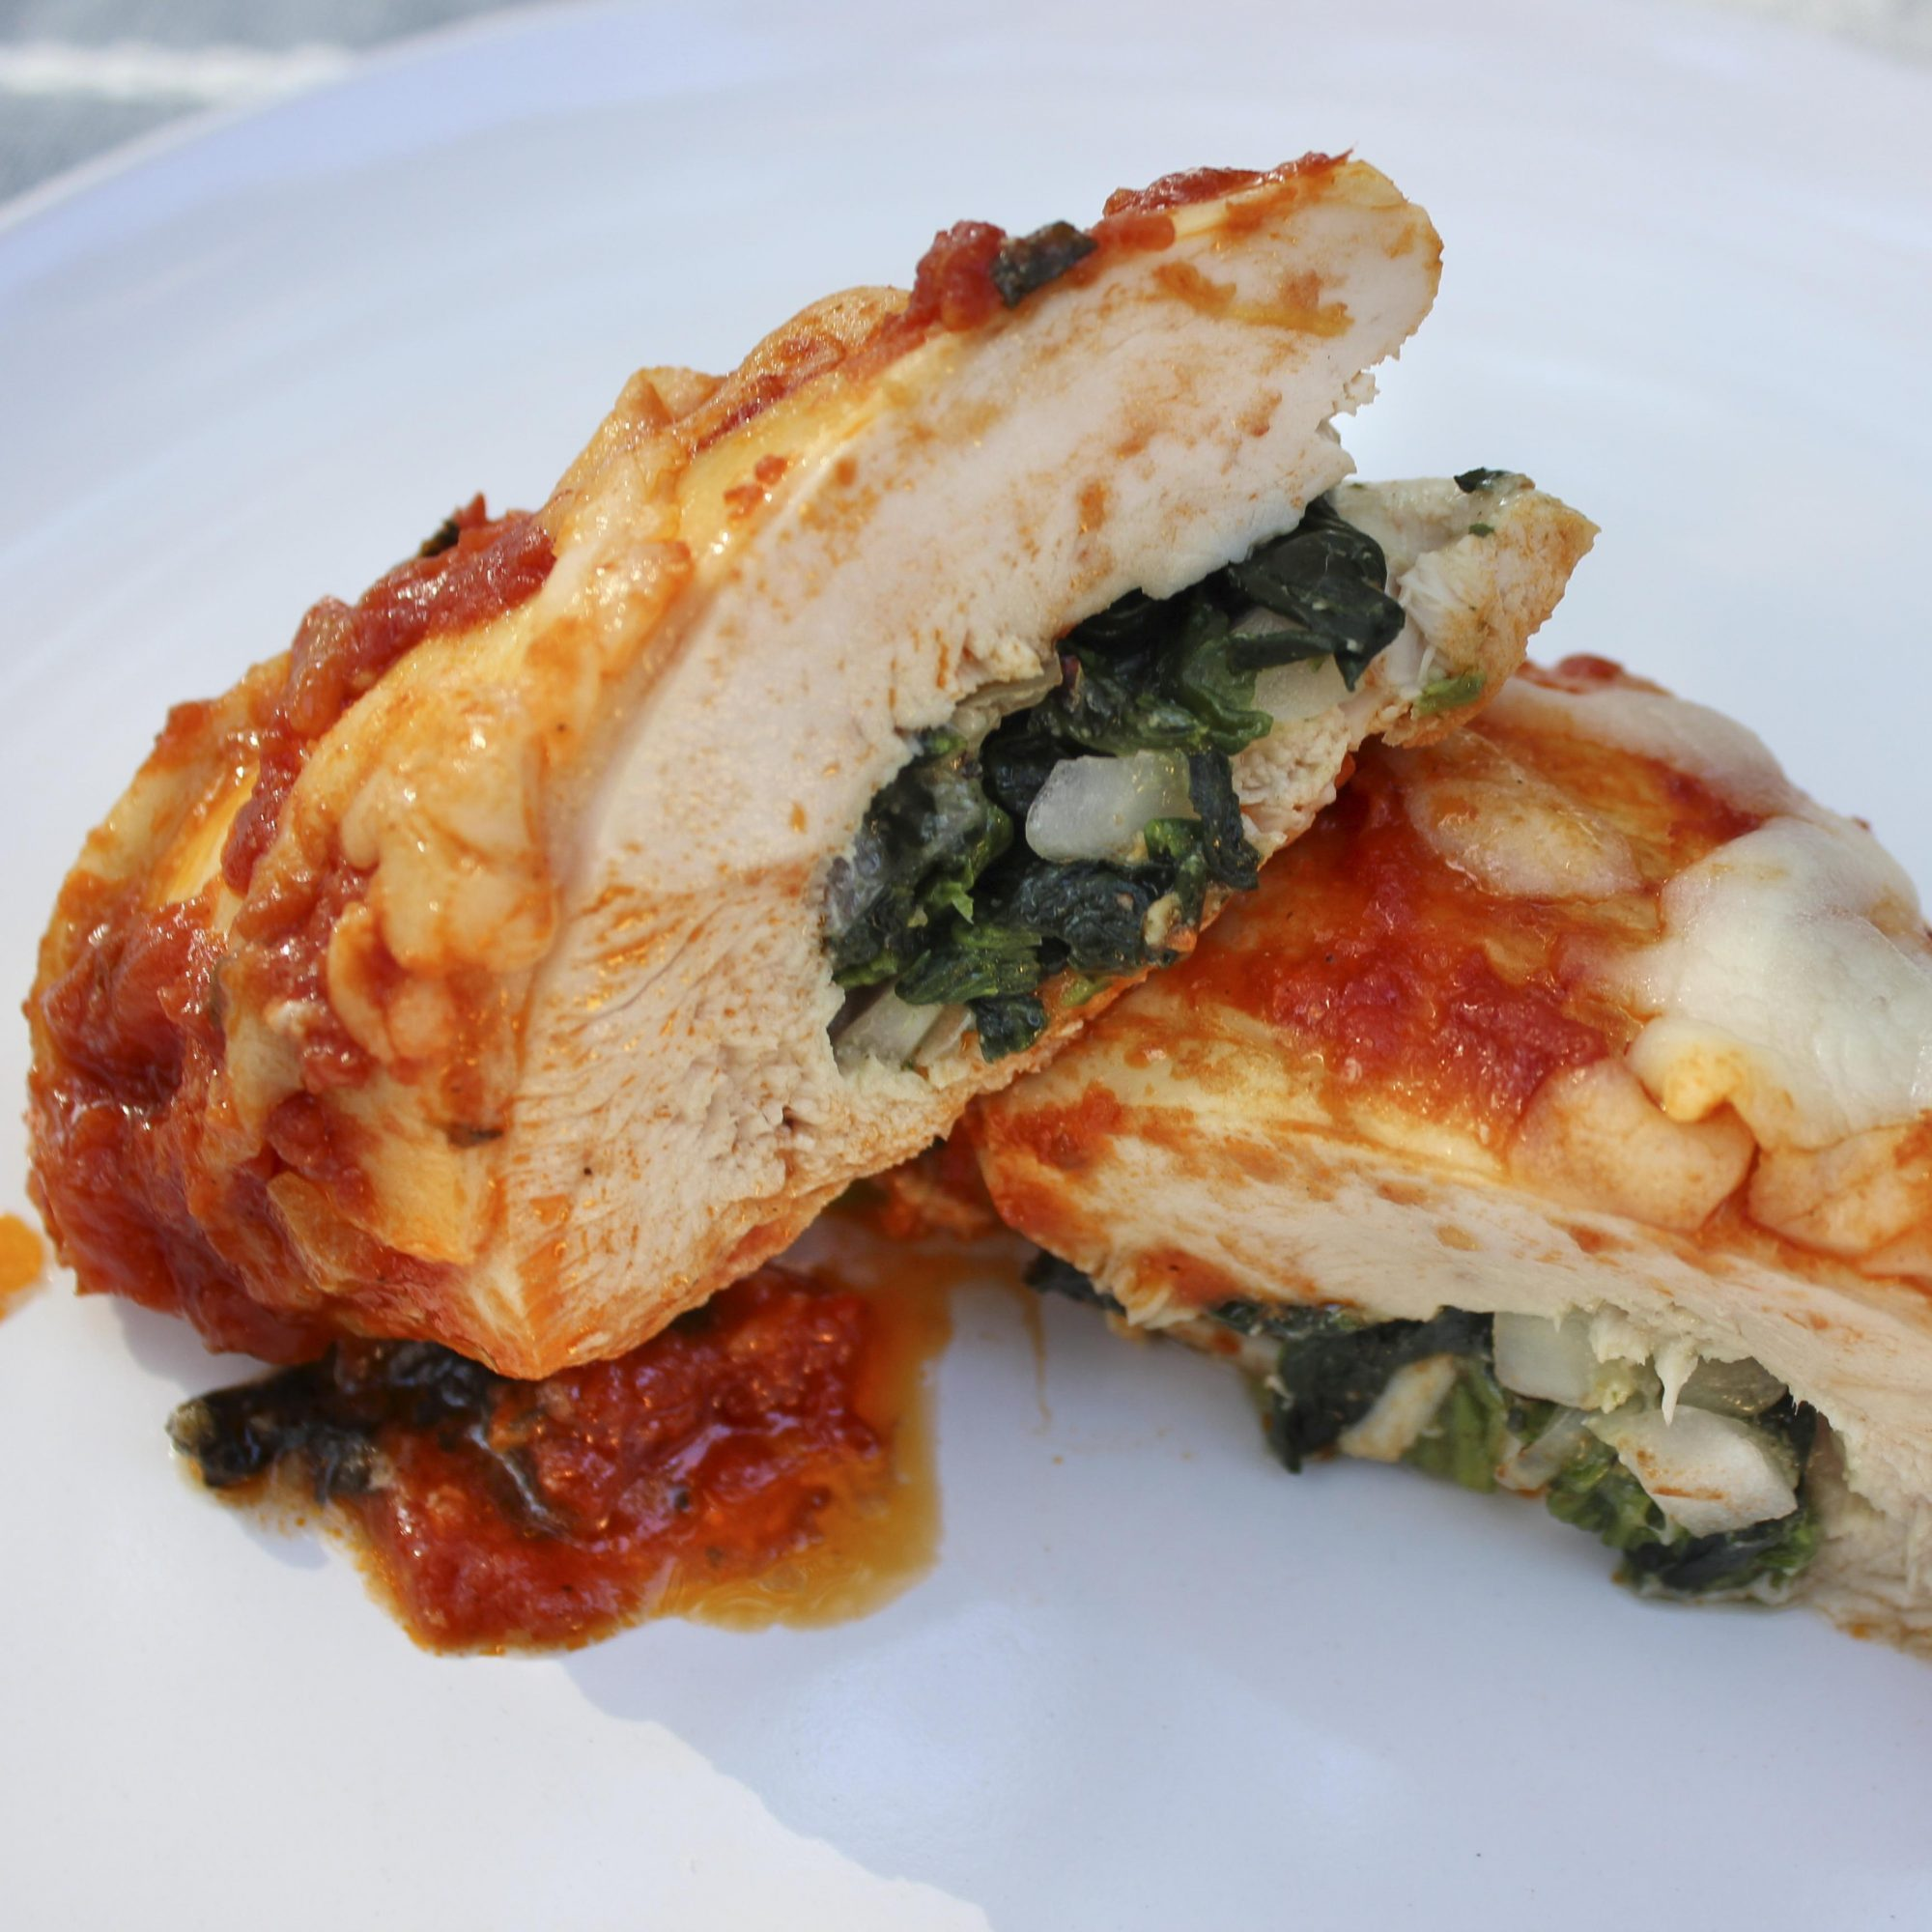 Stuffed chicken breast cut in half to show spinach filling.